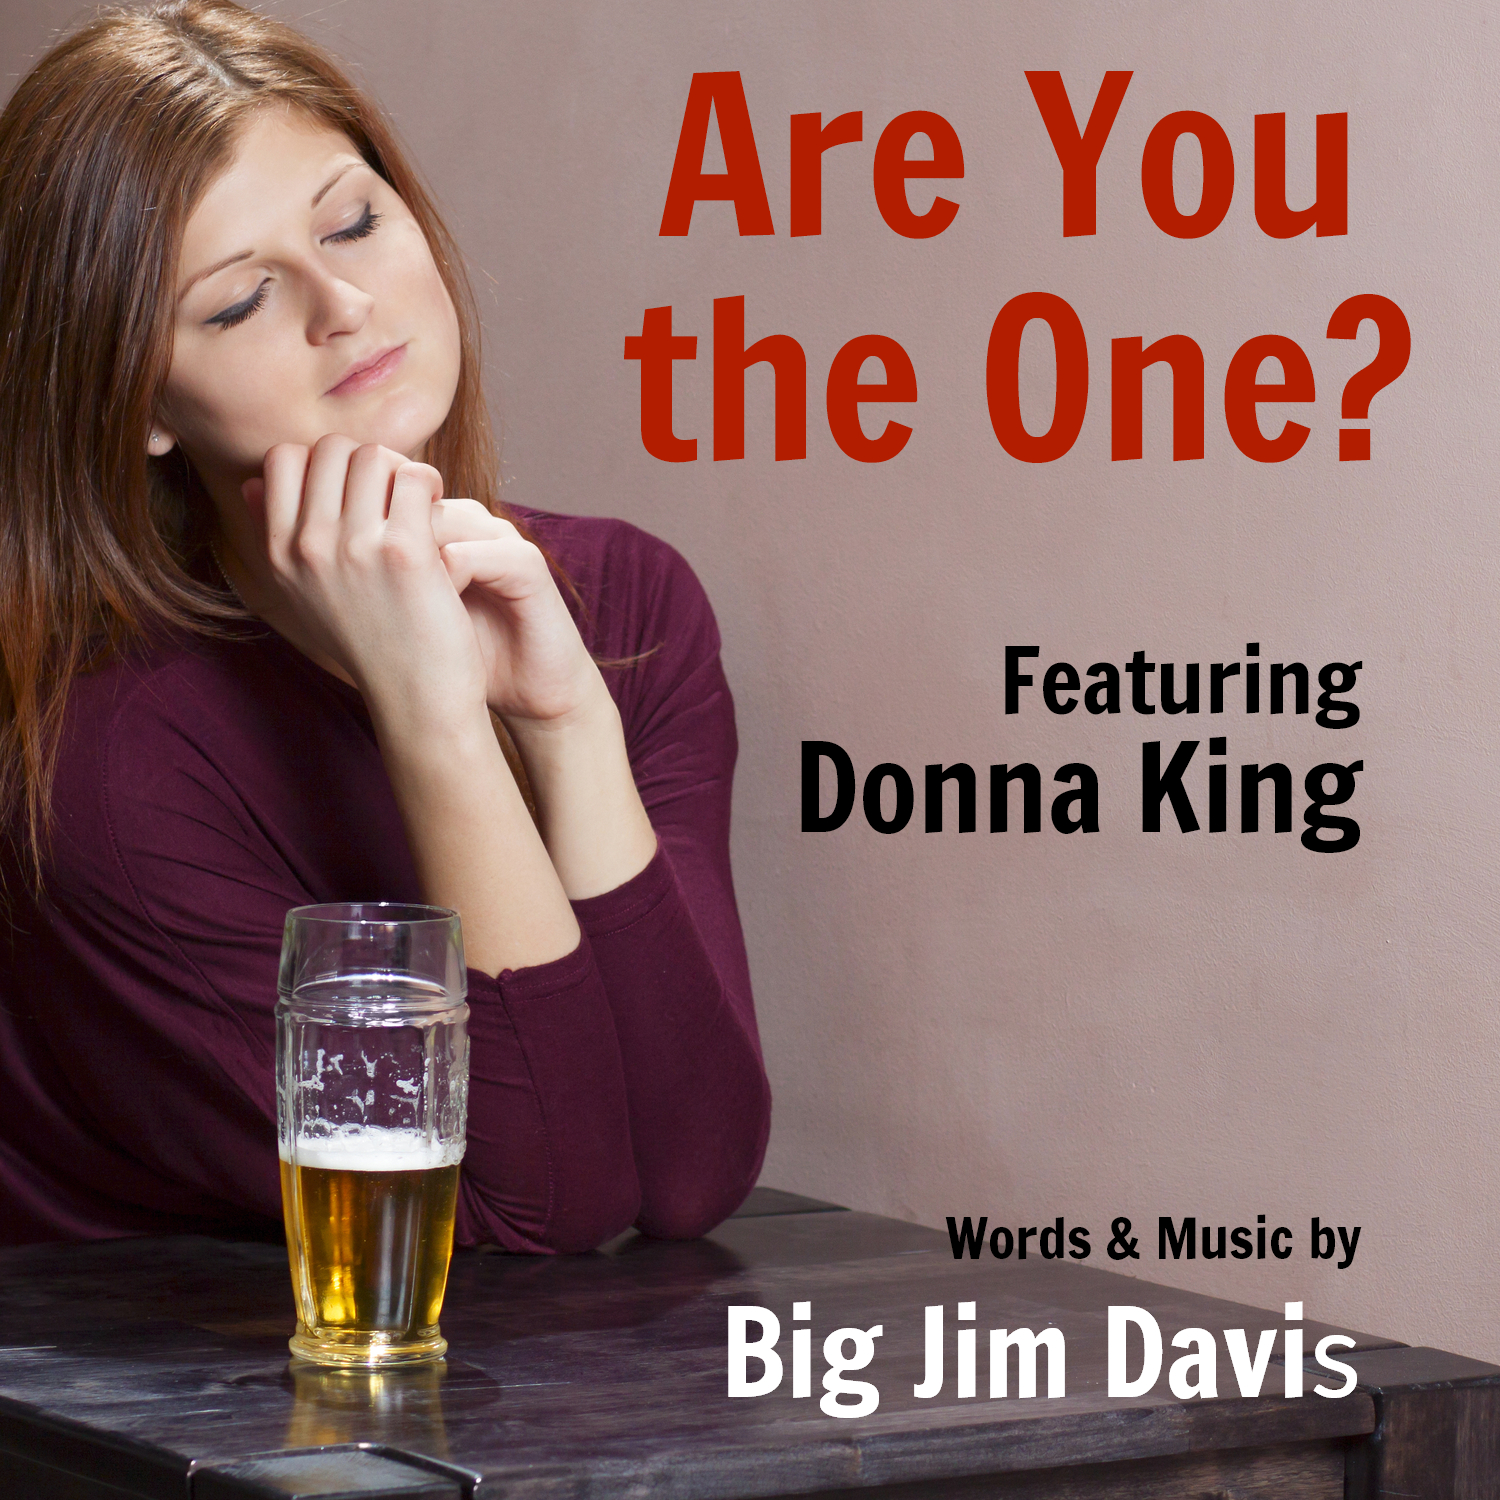 Big Jim Davis - Are You the One? (single)